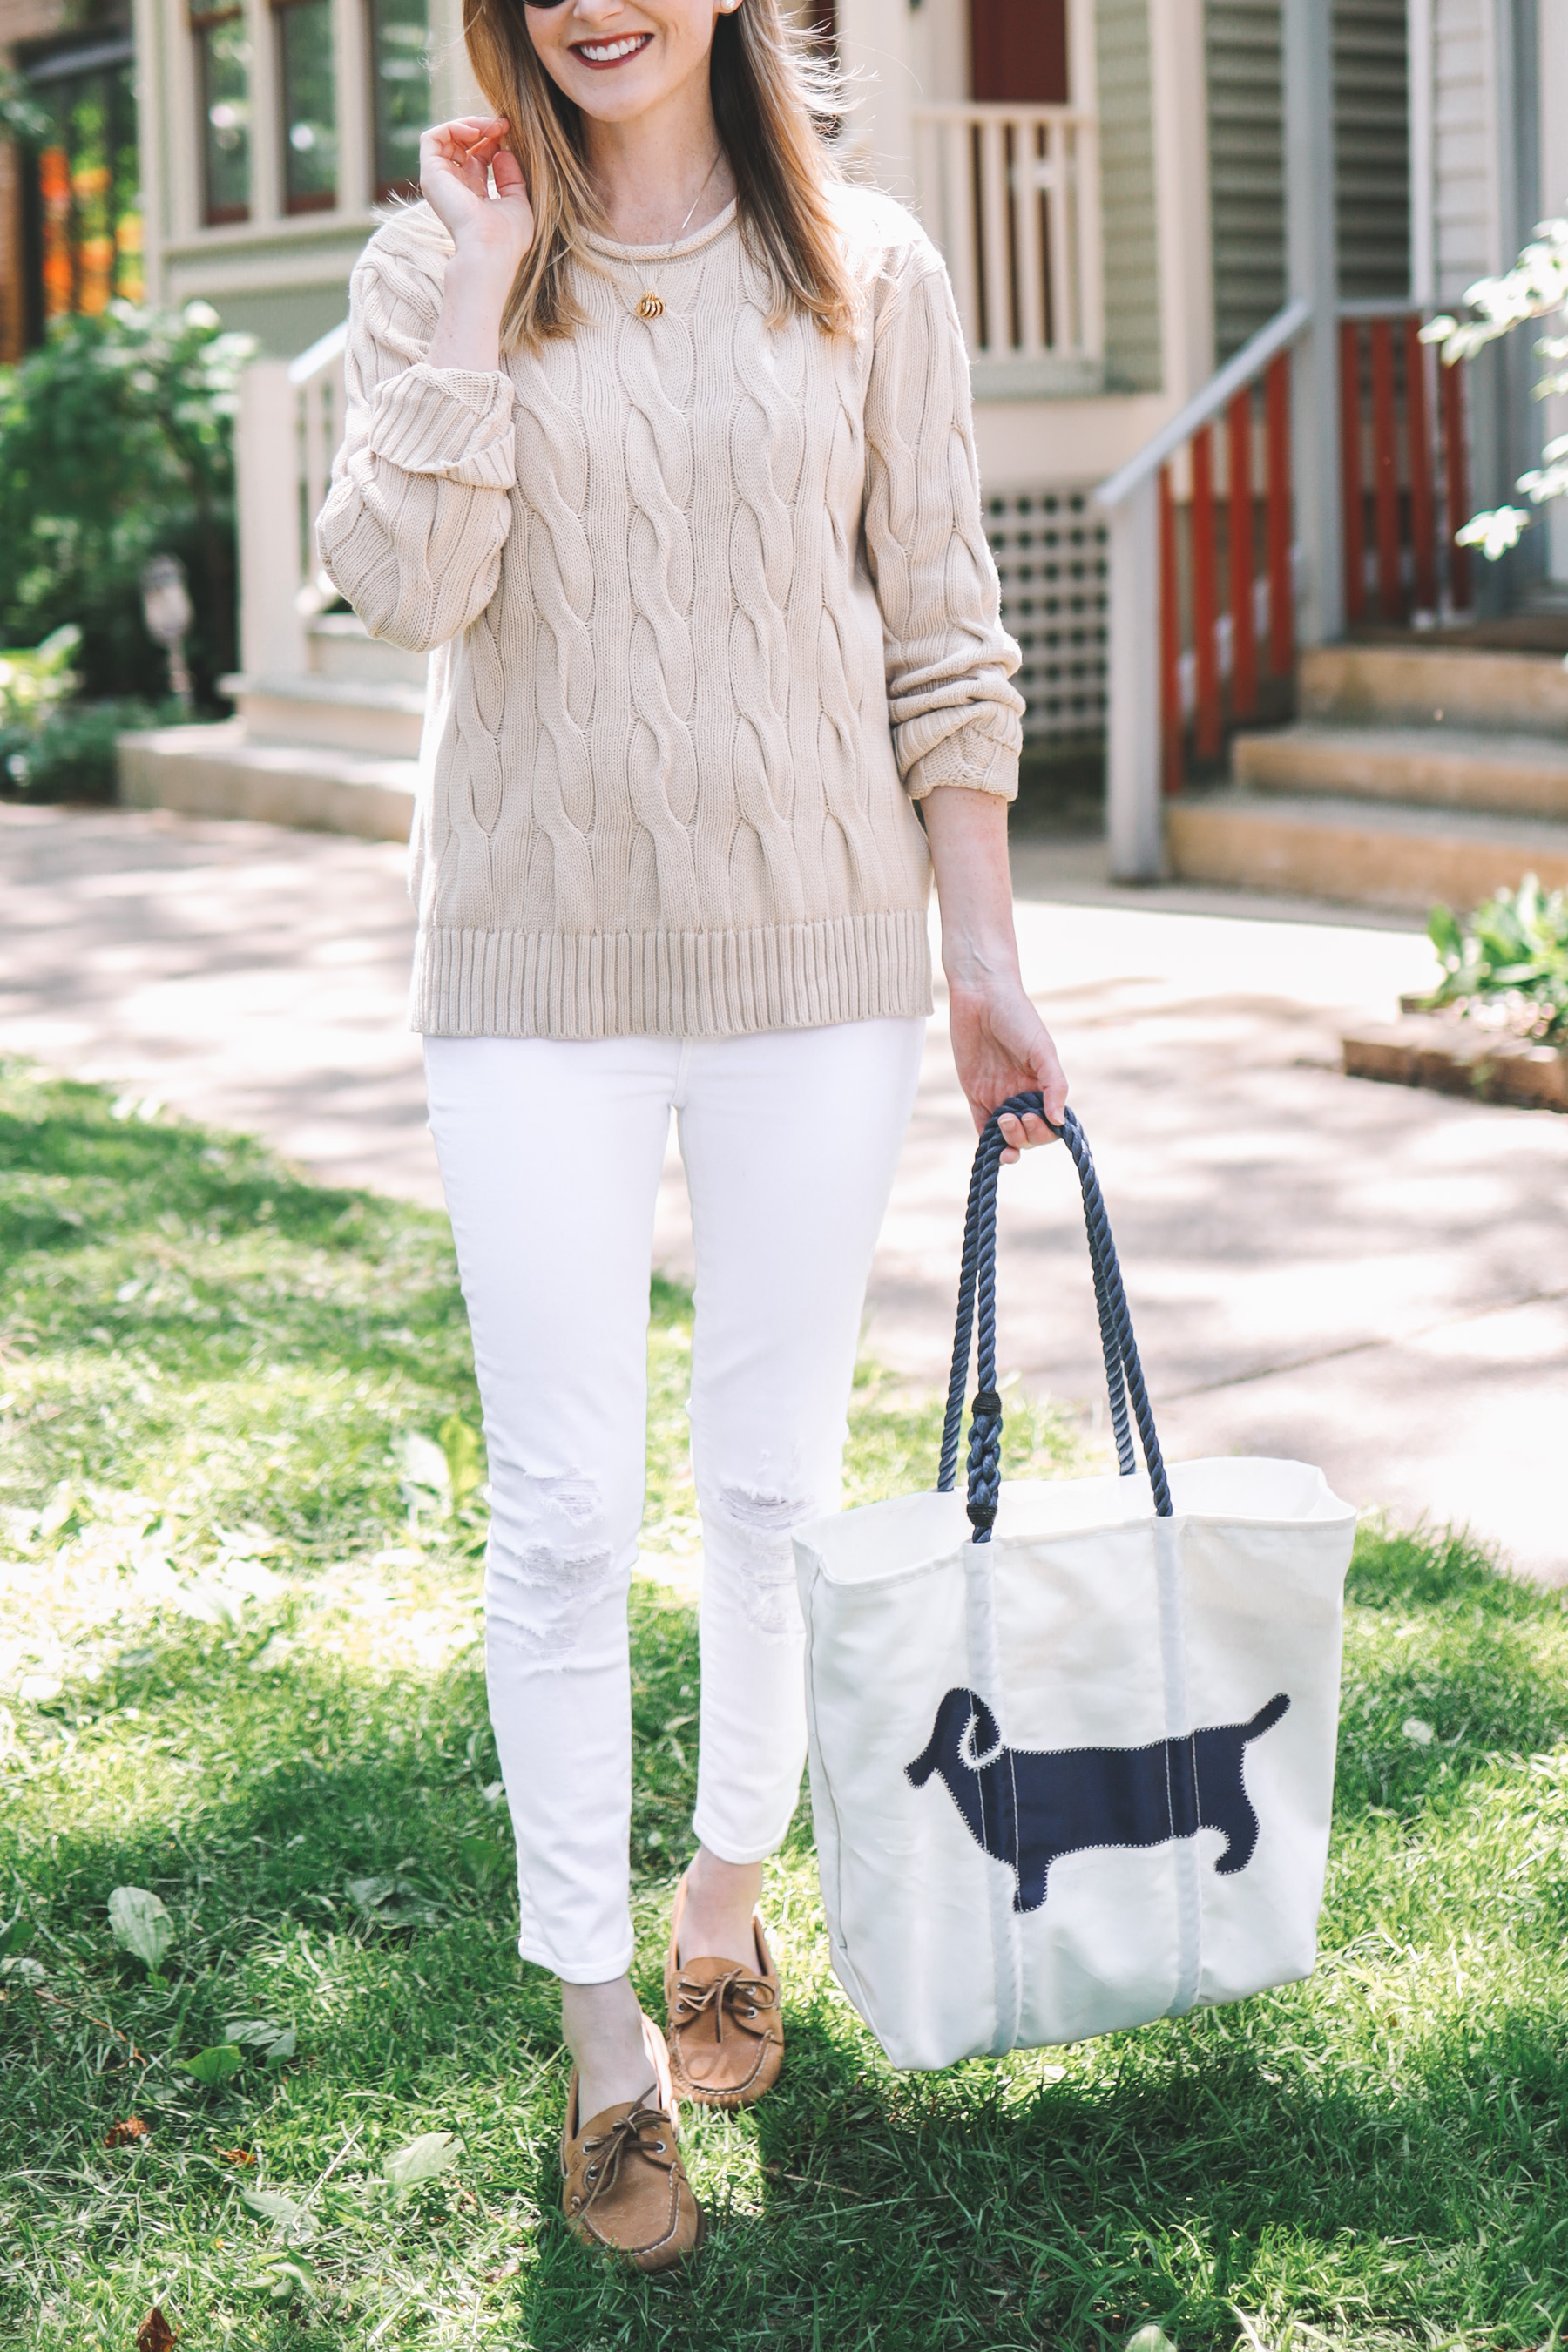 Outfit details: Dachshund Tote Bag - Sea Bags / Ralph Lauren Boxy Cable Knit Sweater / Sperry Topsiders / Maternity Jeans / Stamped Initial Necklace